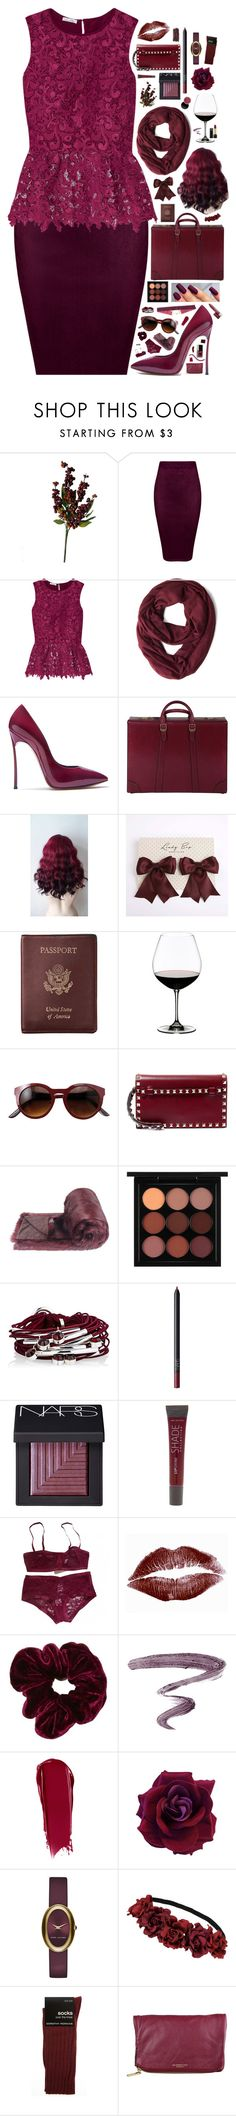 """424"" by glitterals ❤ liked on Polyvore featuring Oscar de la Renta, Casadei, Gucci, Royce Leather, Riedel, Valentino, Helen Moore, MAC Cosmetics, Gillian Julius and NARS Cosmetics"